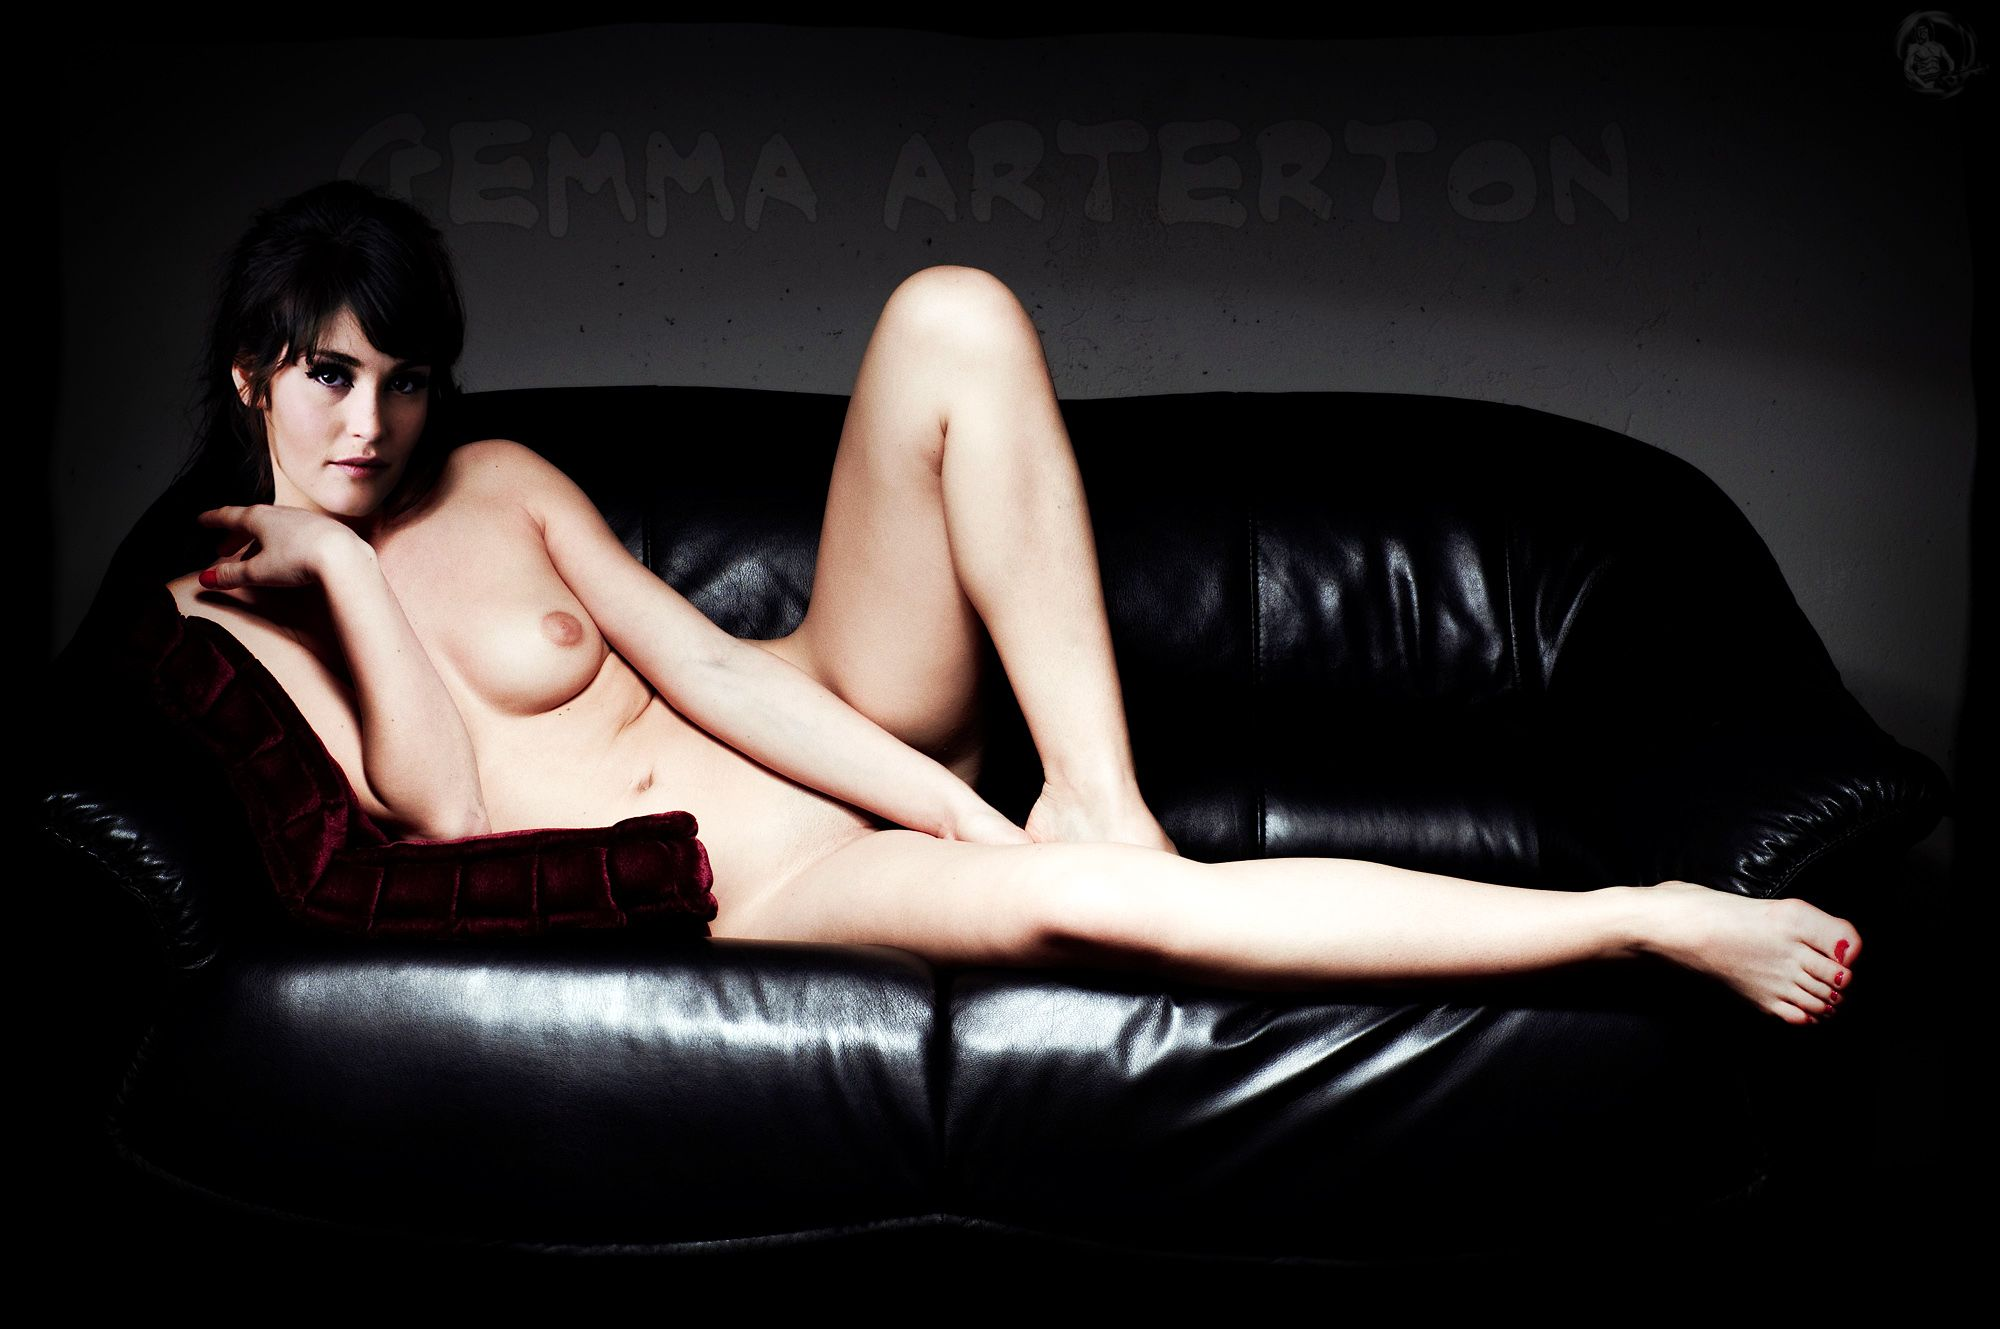 Gemma arterton naked ass pictures, my fucking deer hunter